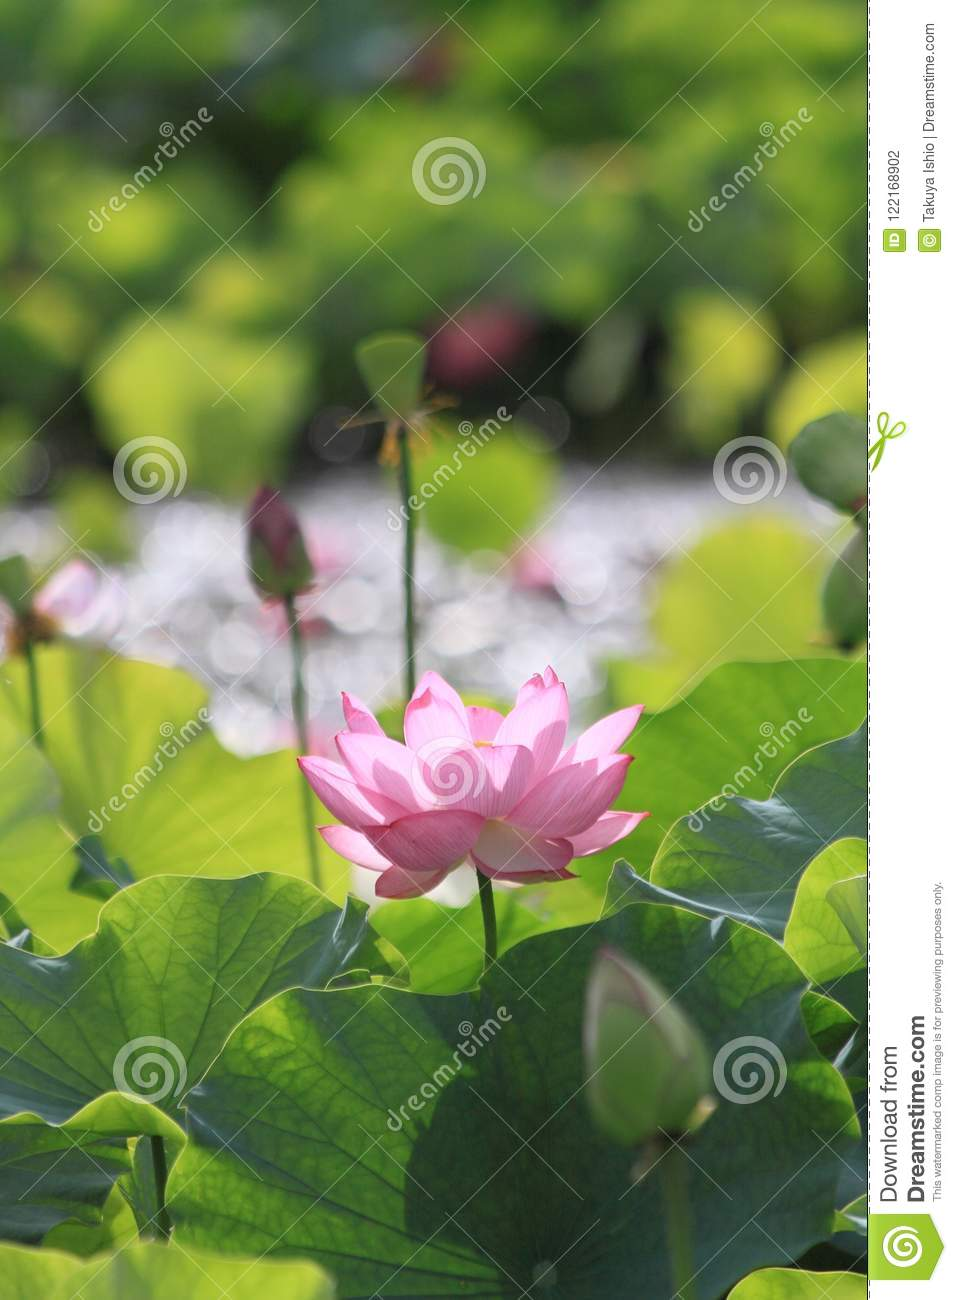 Lotus Flower Blossoms In A Japanese Garden Stock Photo Image Of